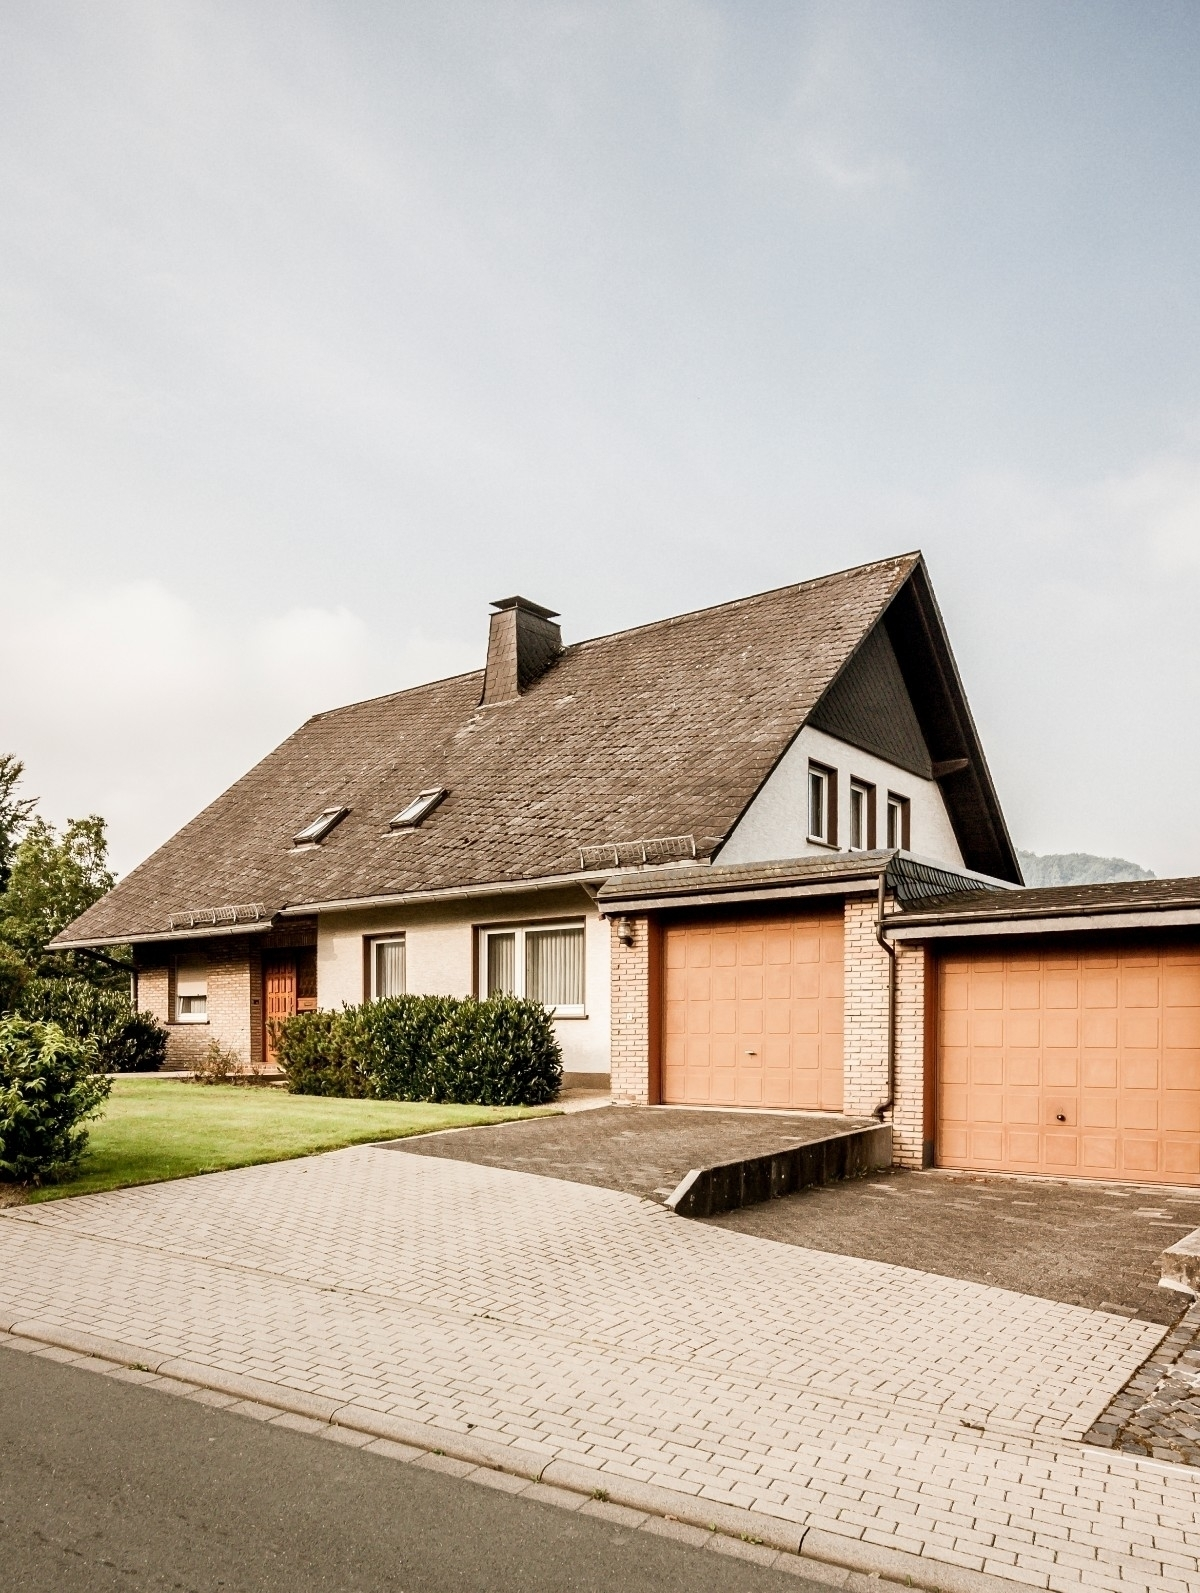 - German suburbia check full st - andreboettcher | ello